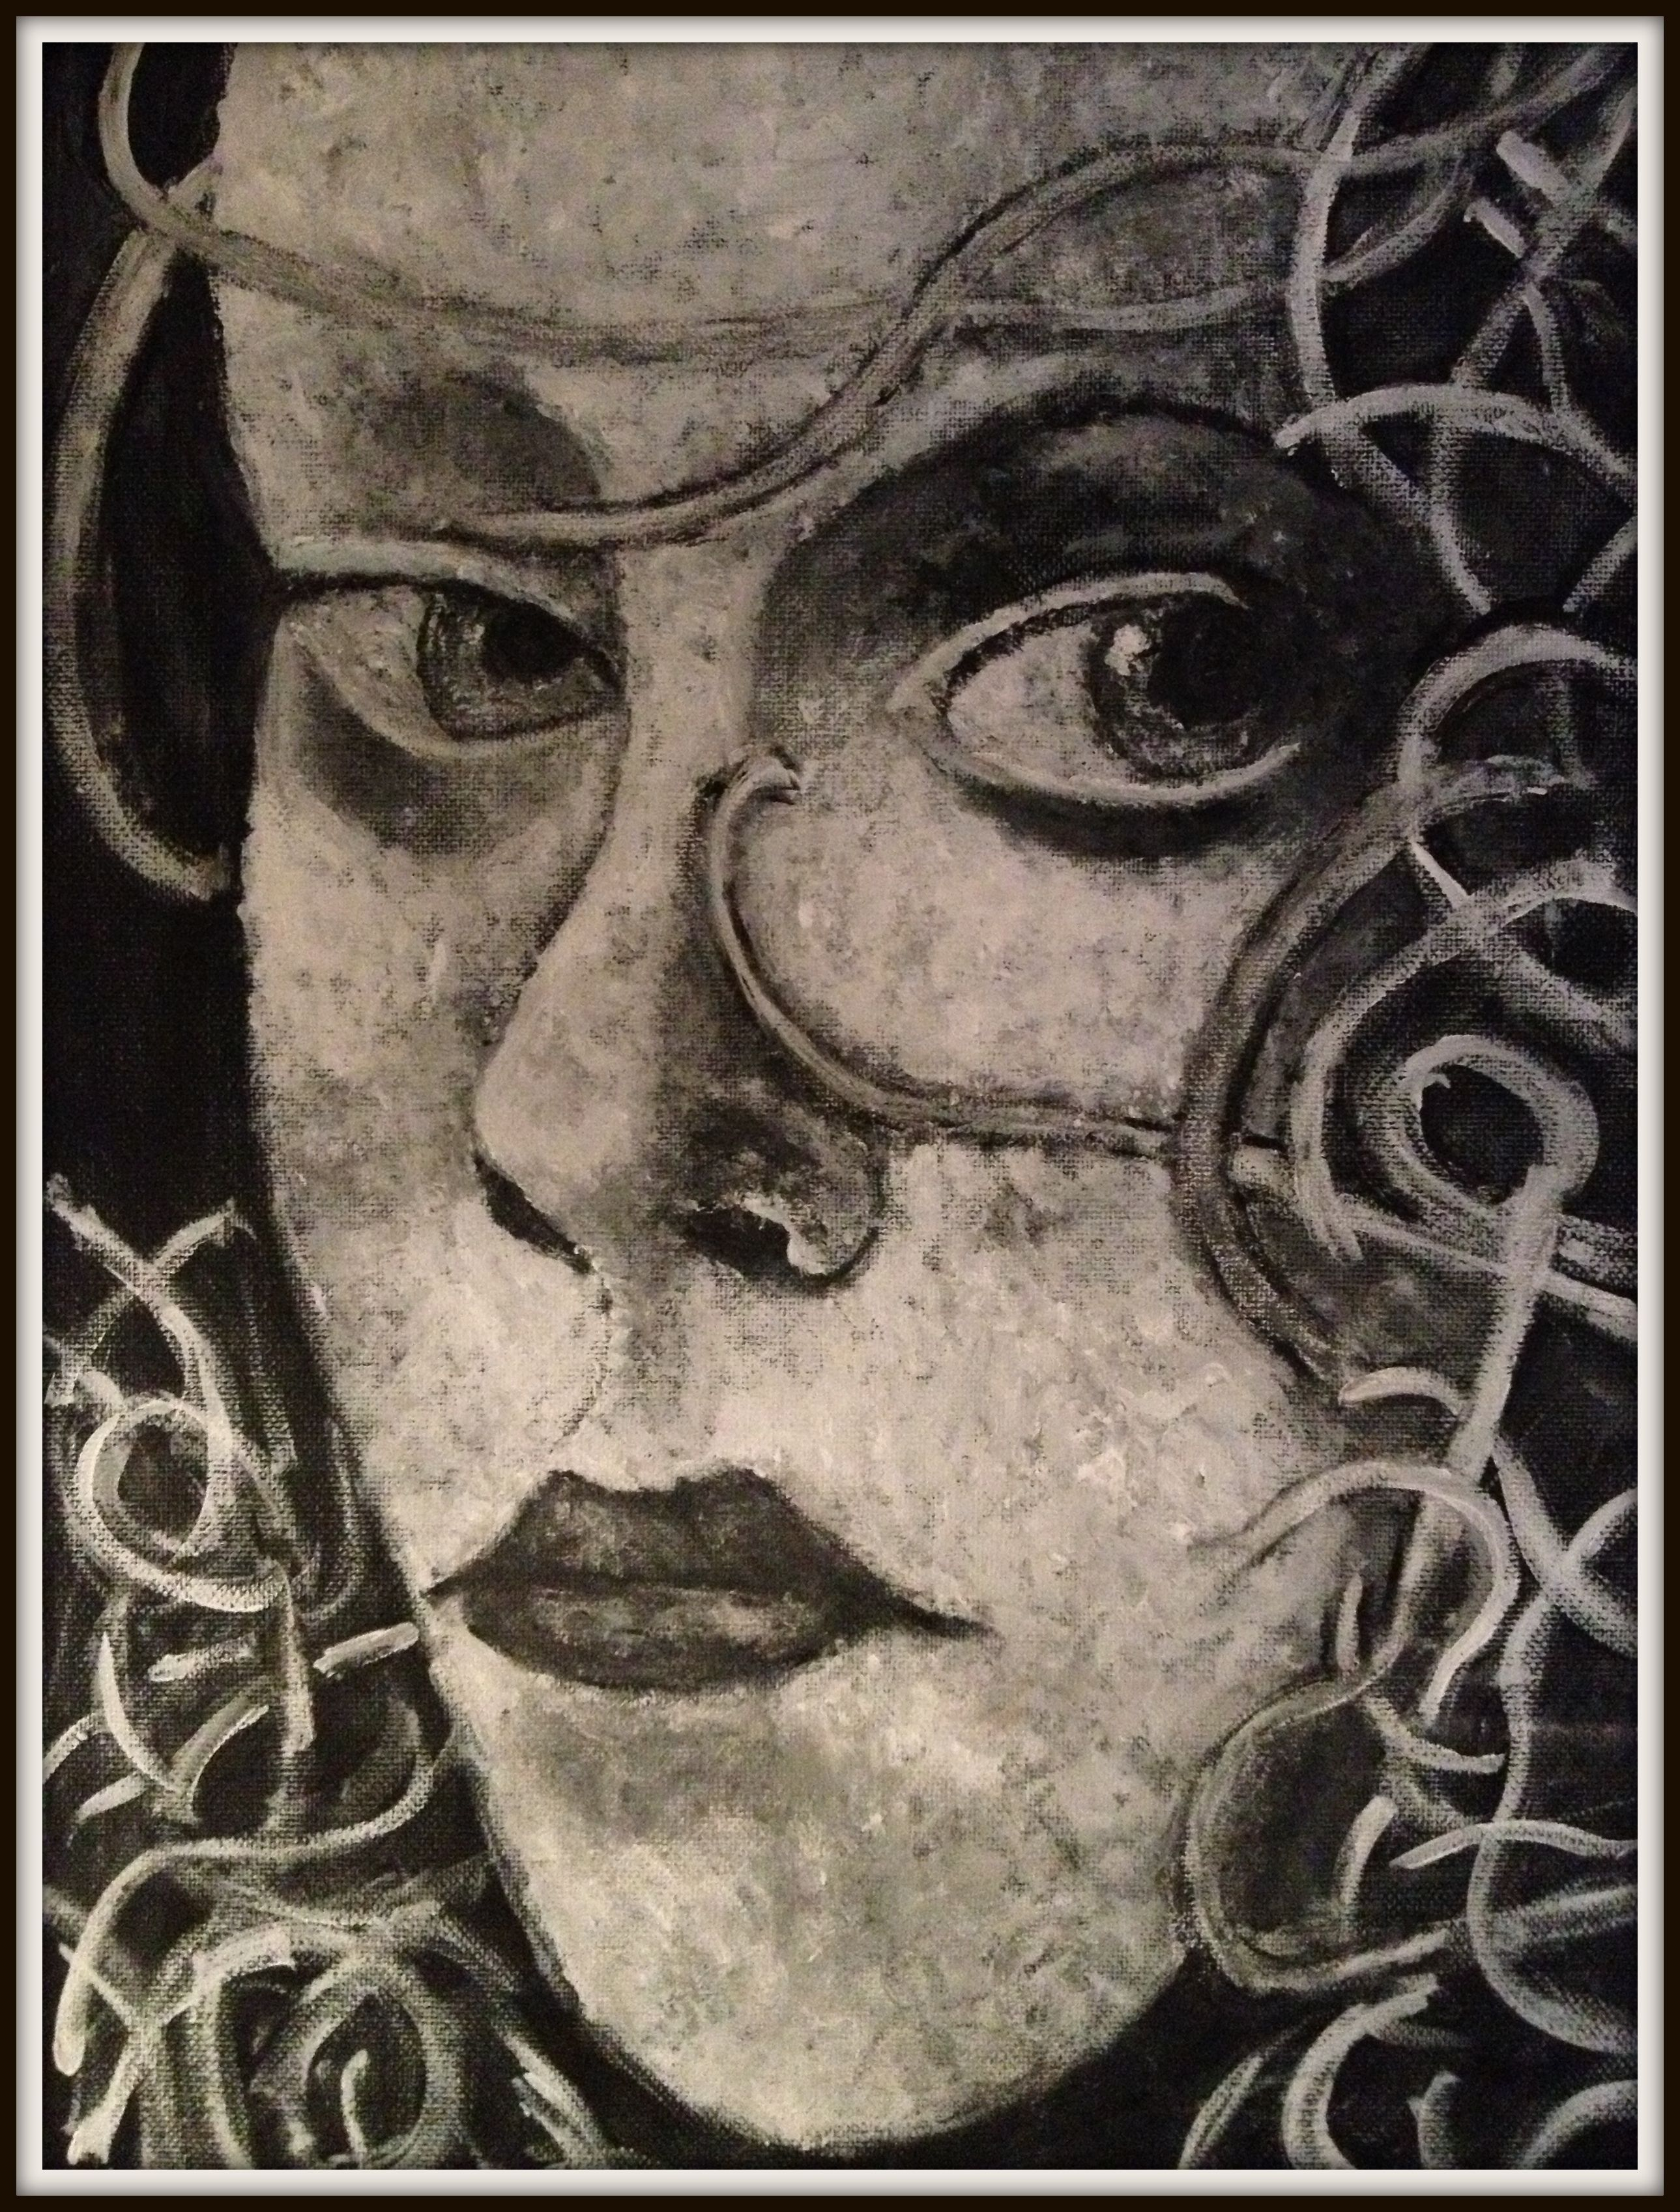 Chuck Close on Women images